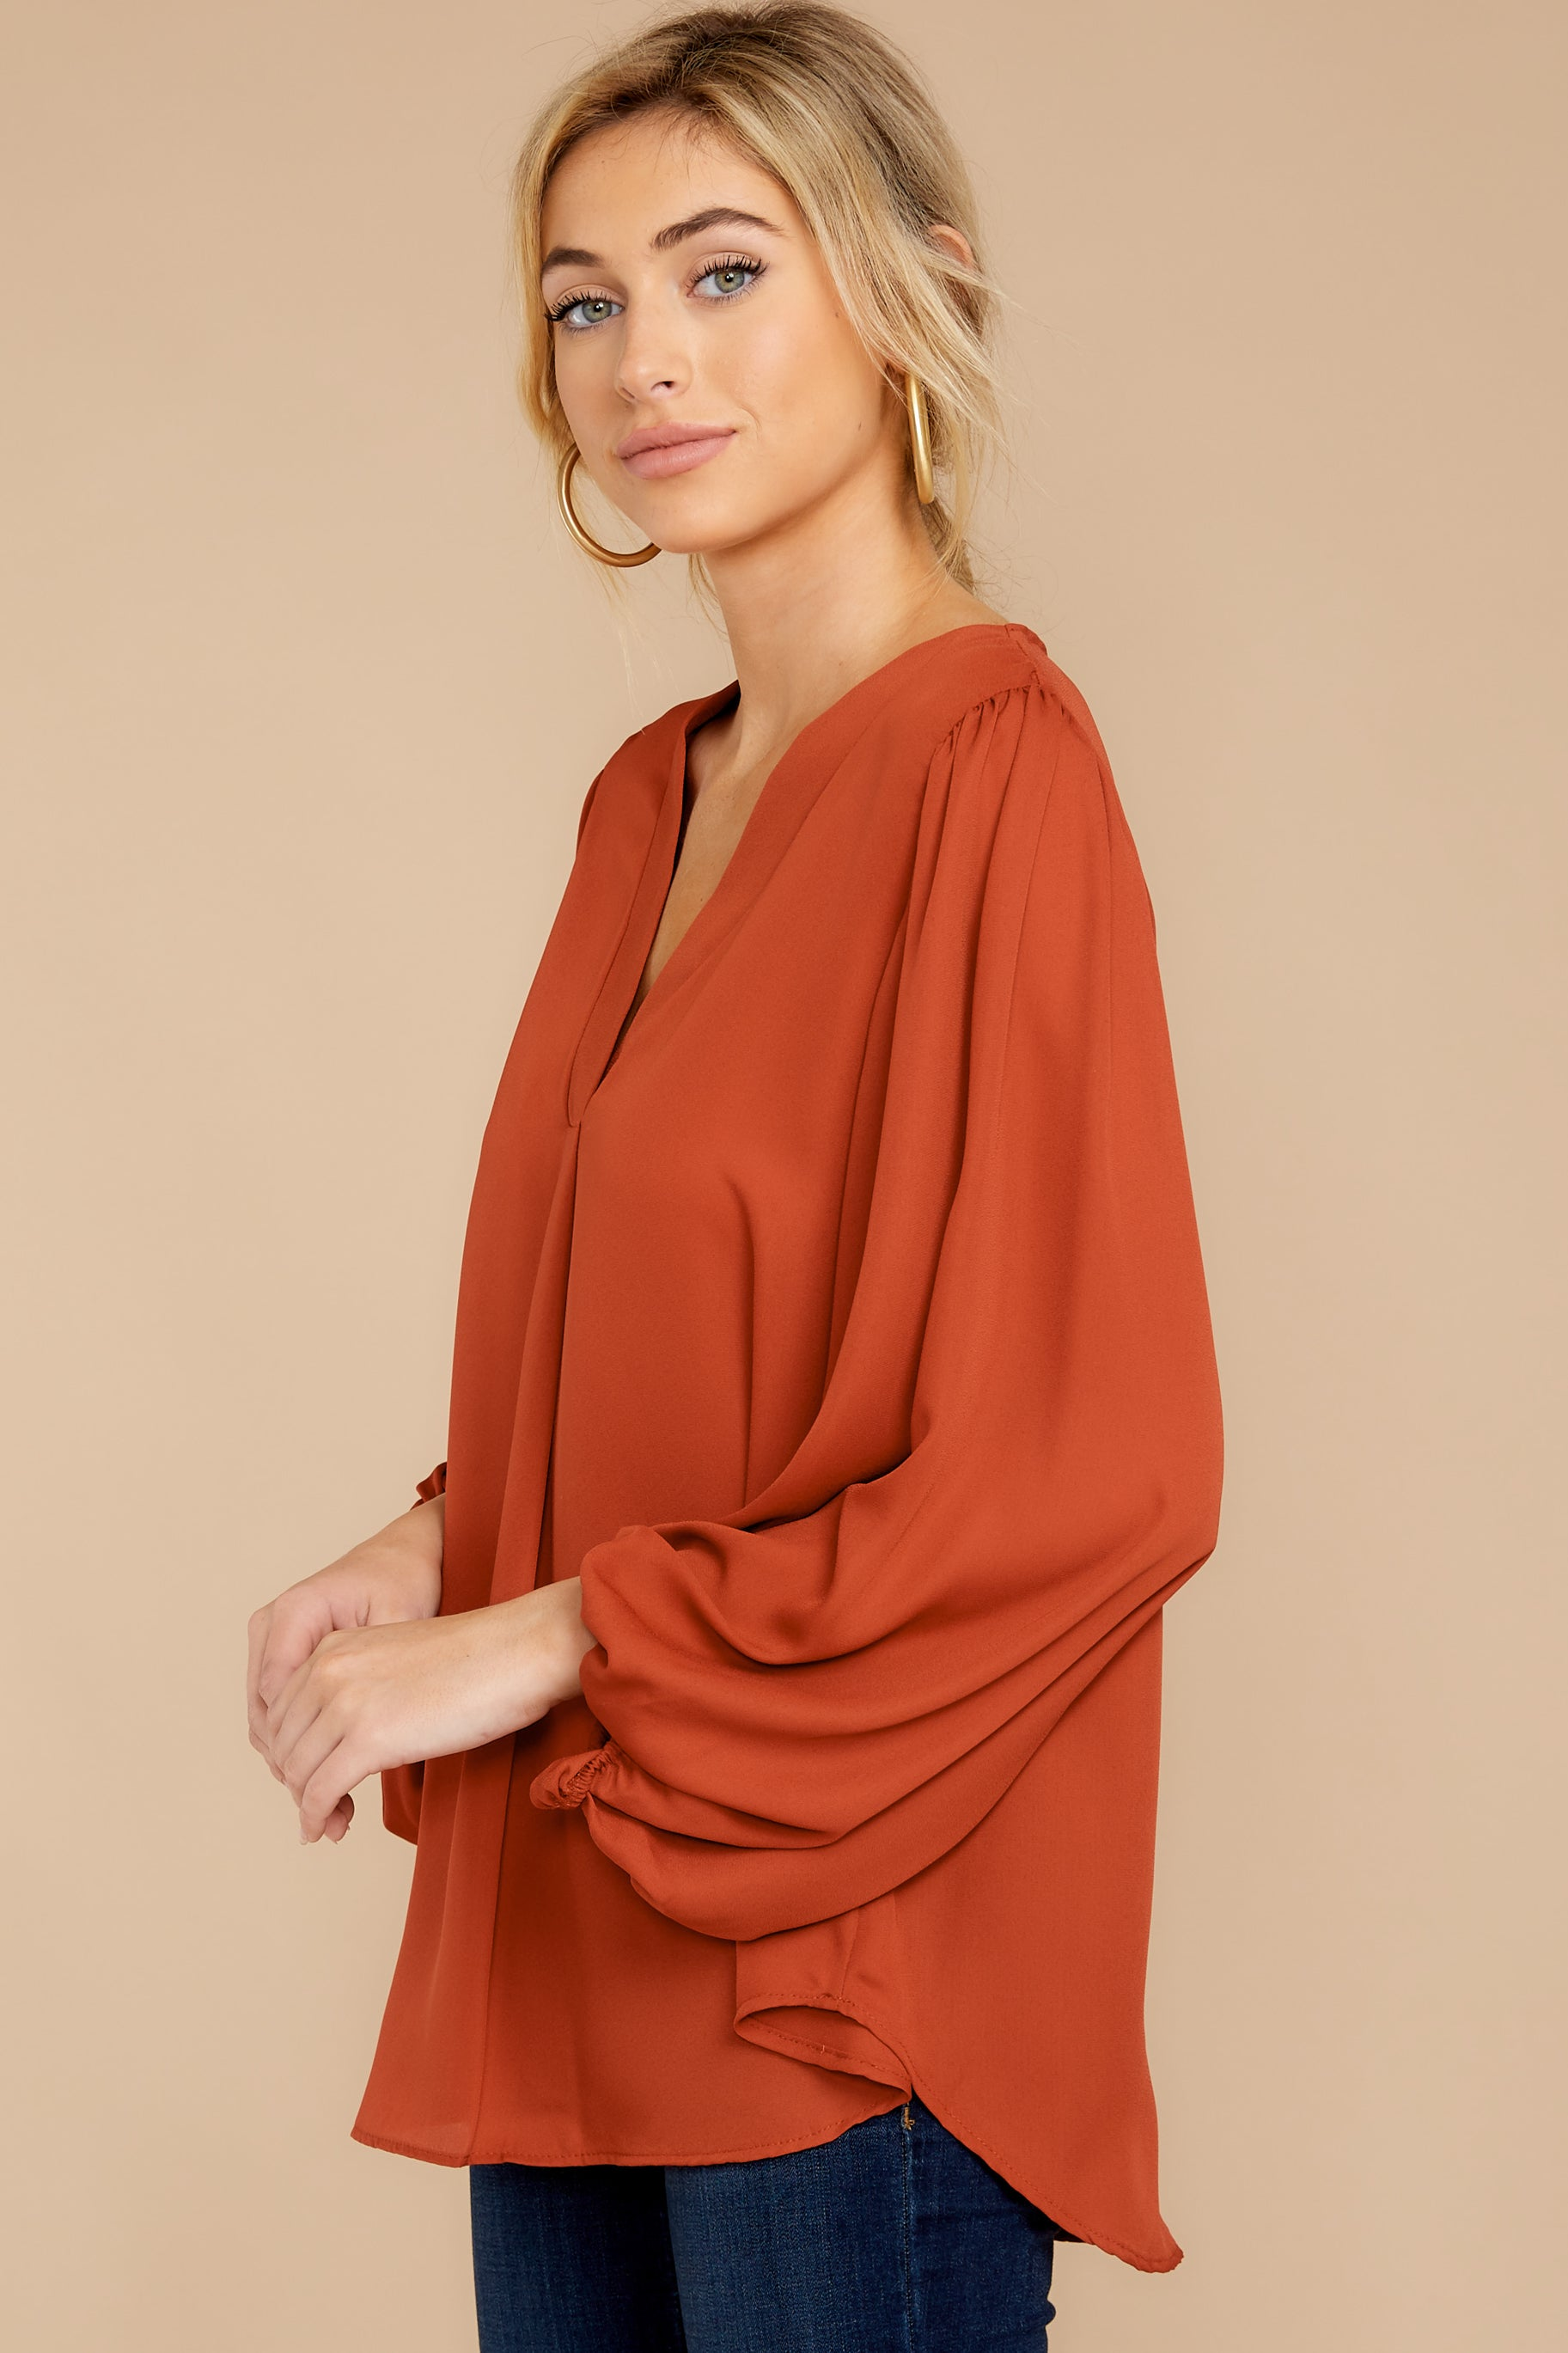 7 Around The Corner Rust Top at reddressboutique.com